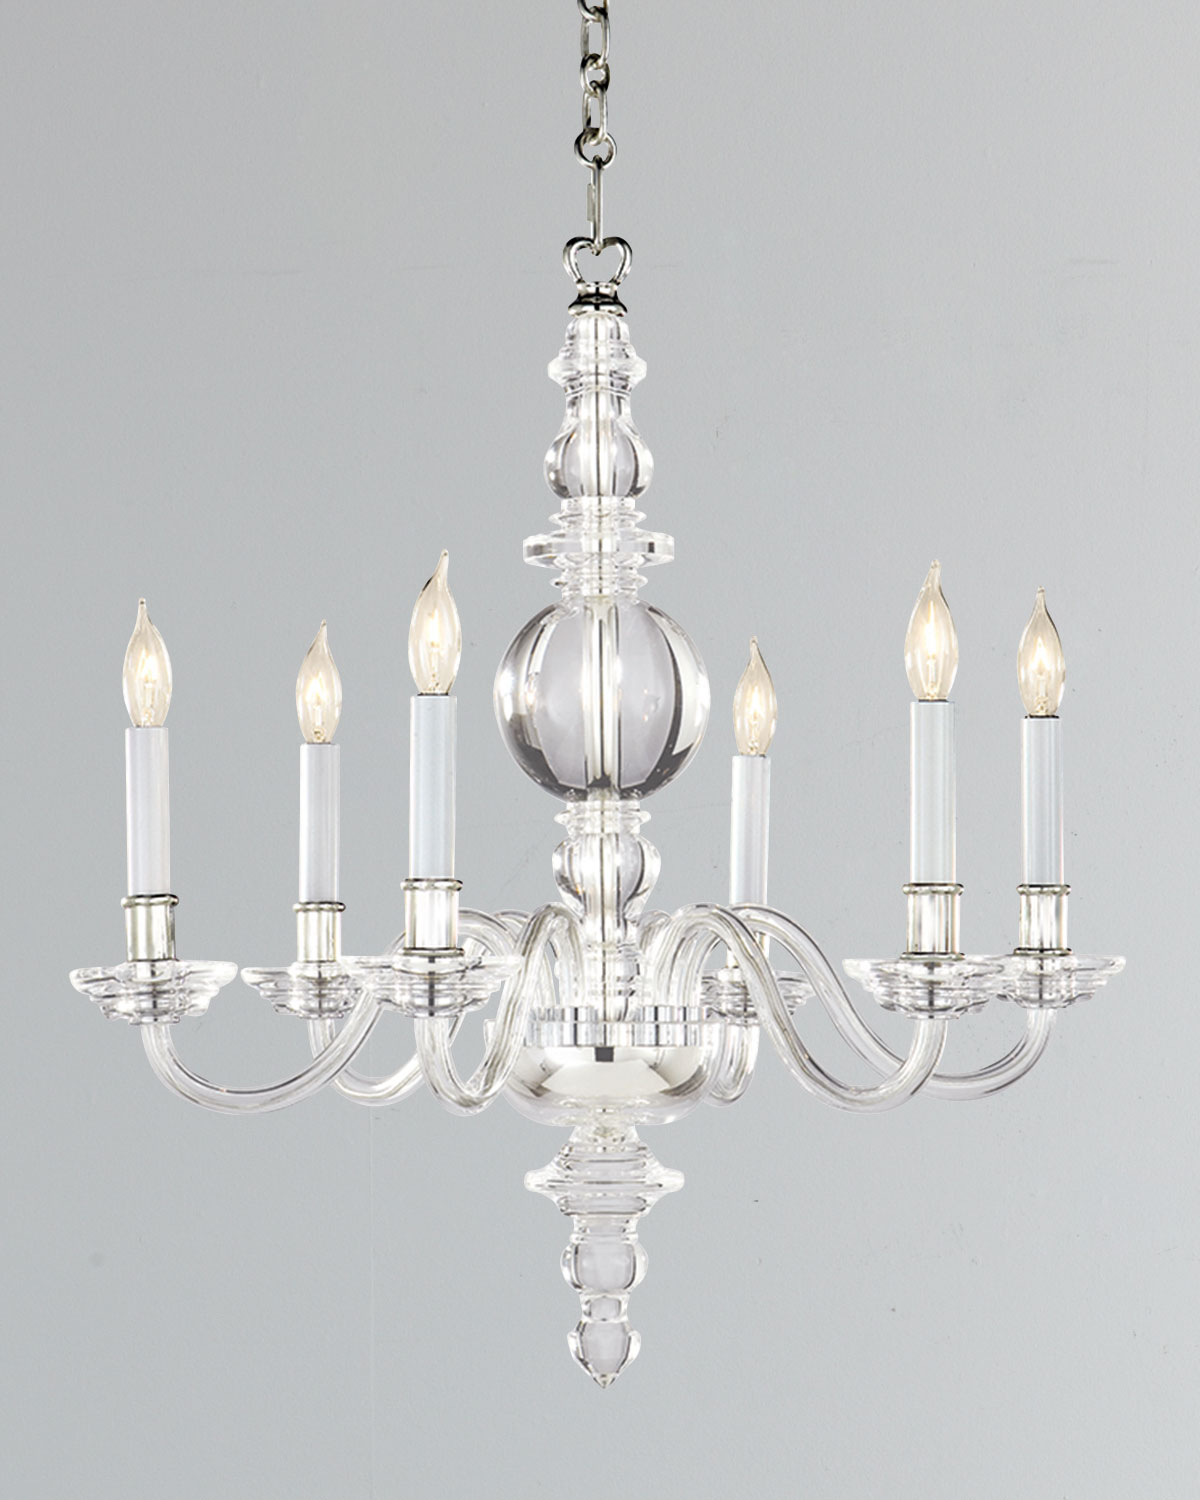 Chapman & Myers George II Small 6-Light Polished-Nickel Chandelier